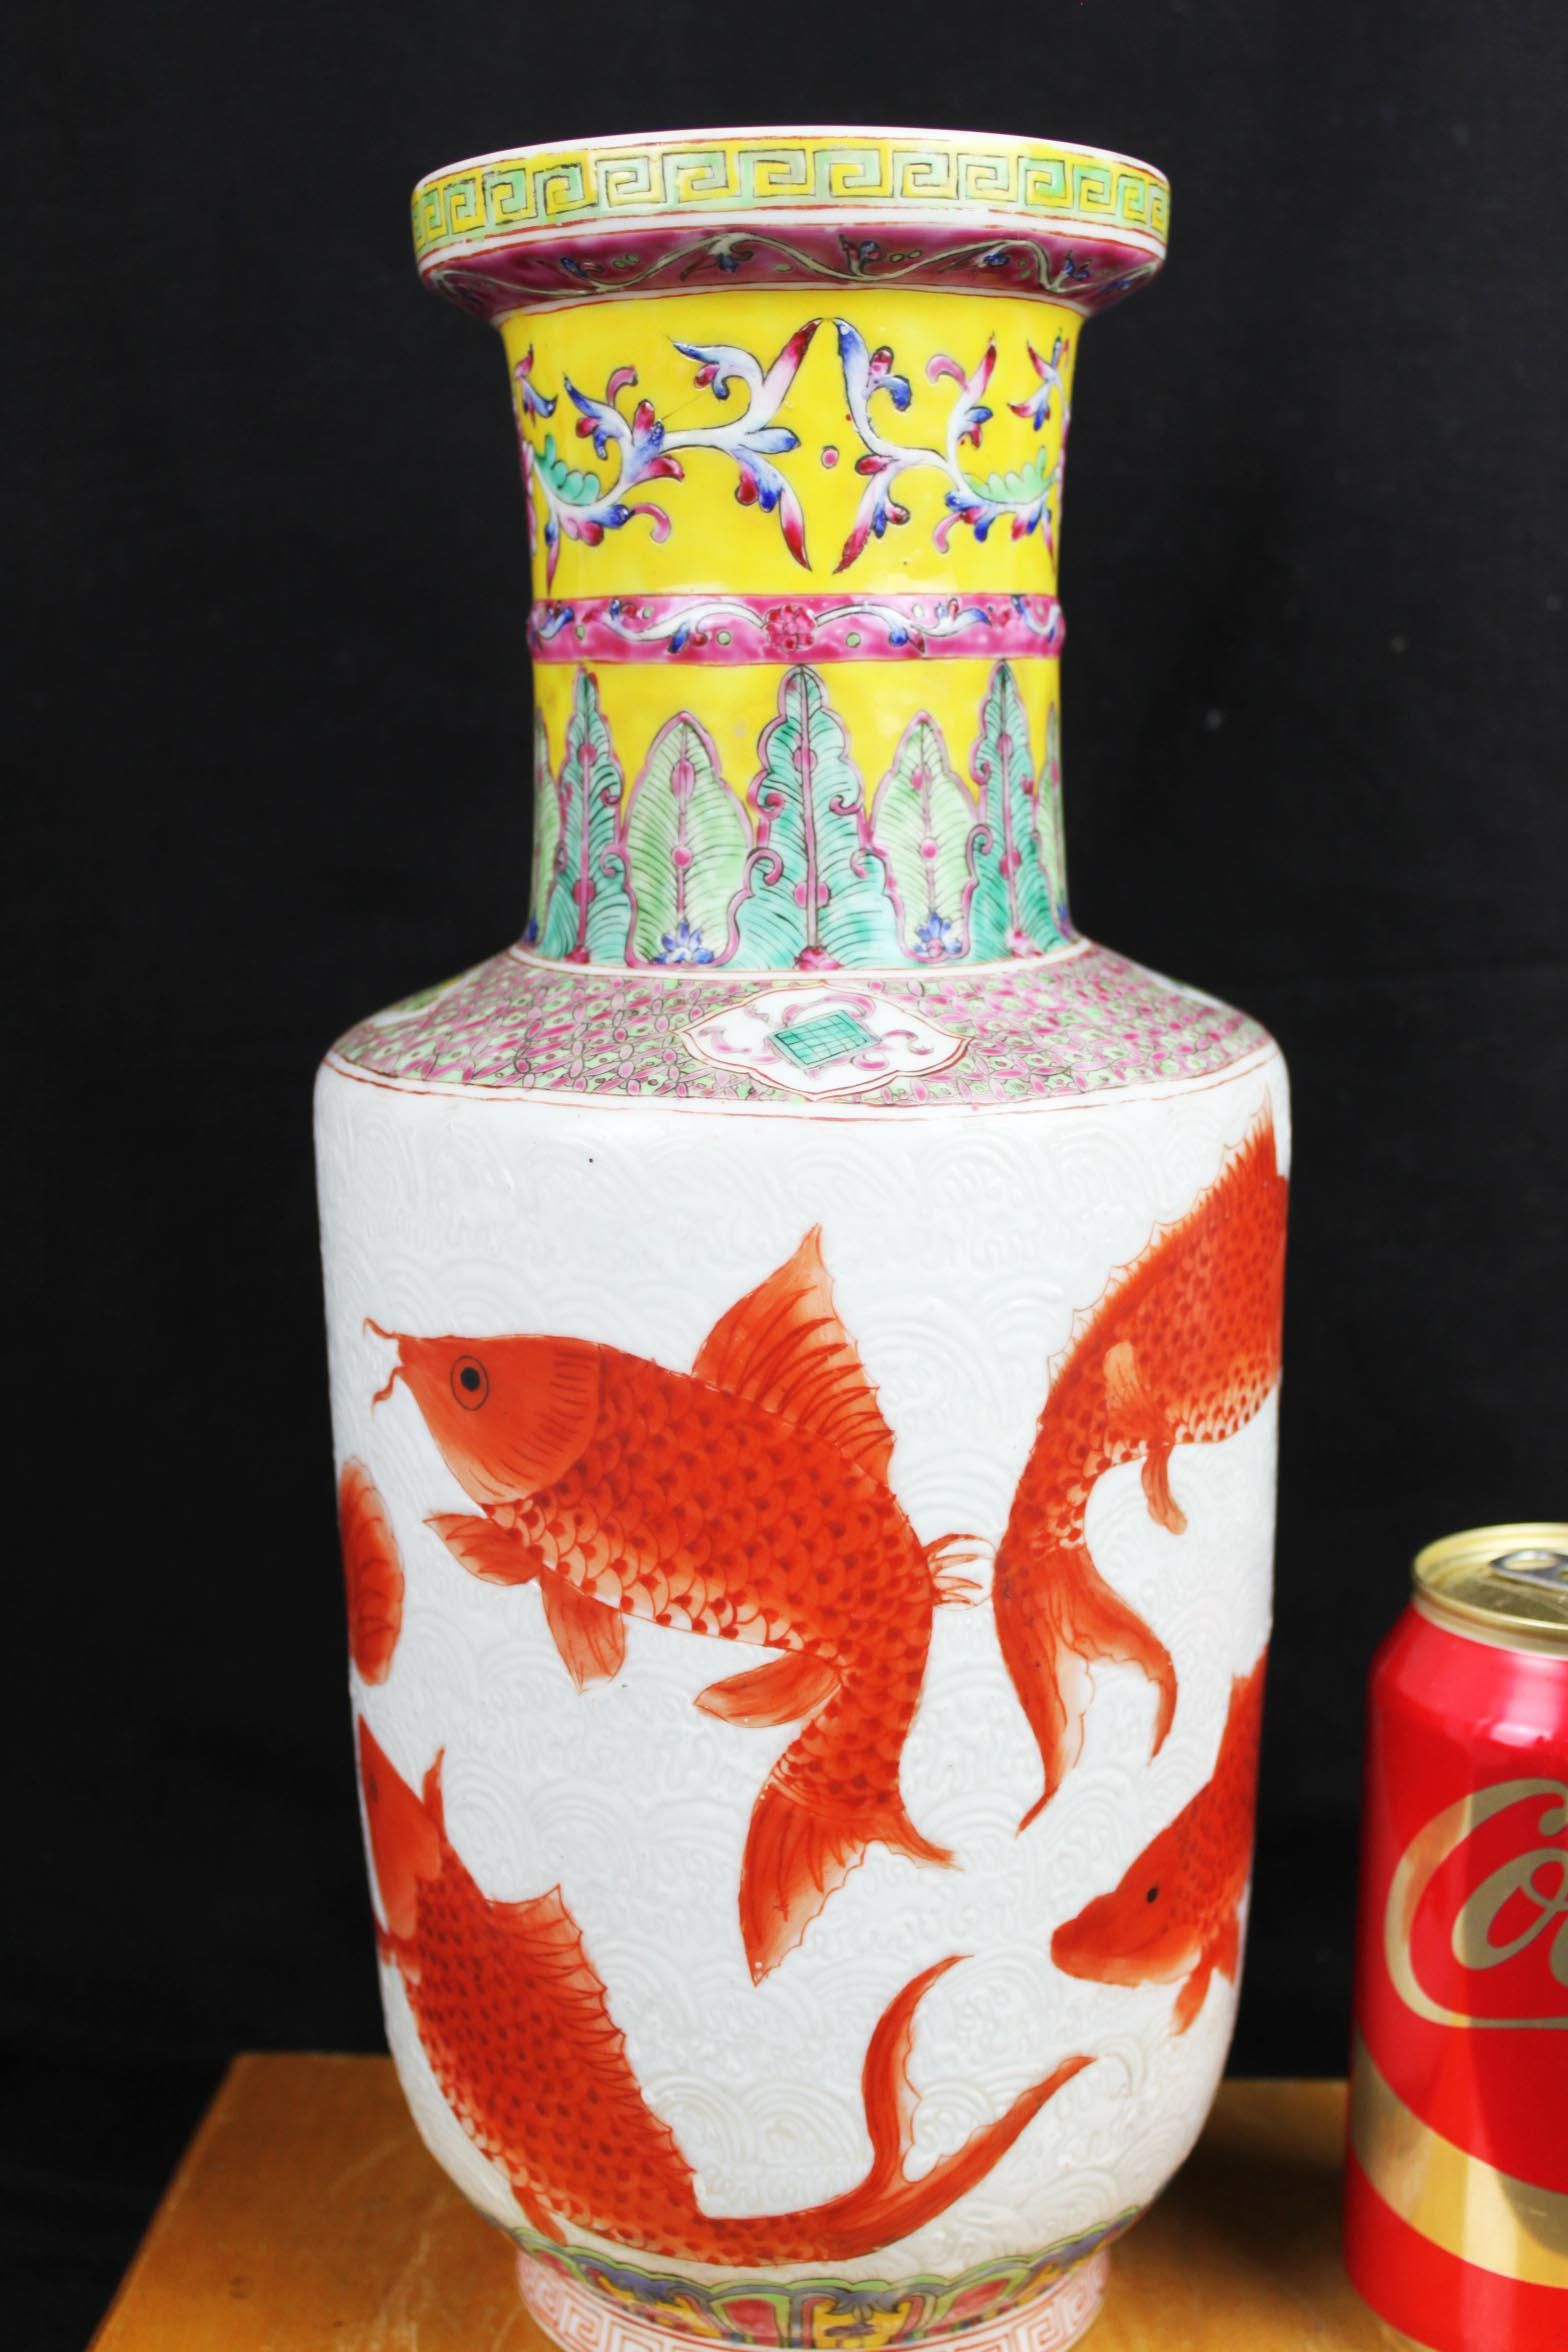 Antique Chinese Porcelain Vase with Red Fish Painting